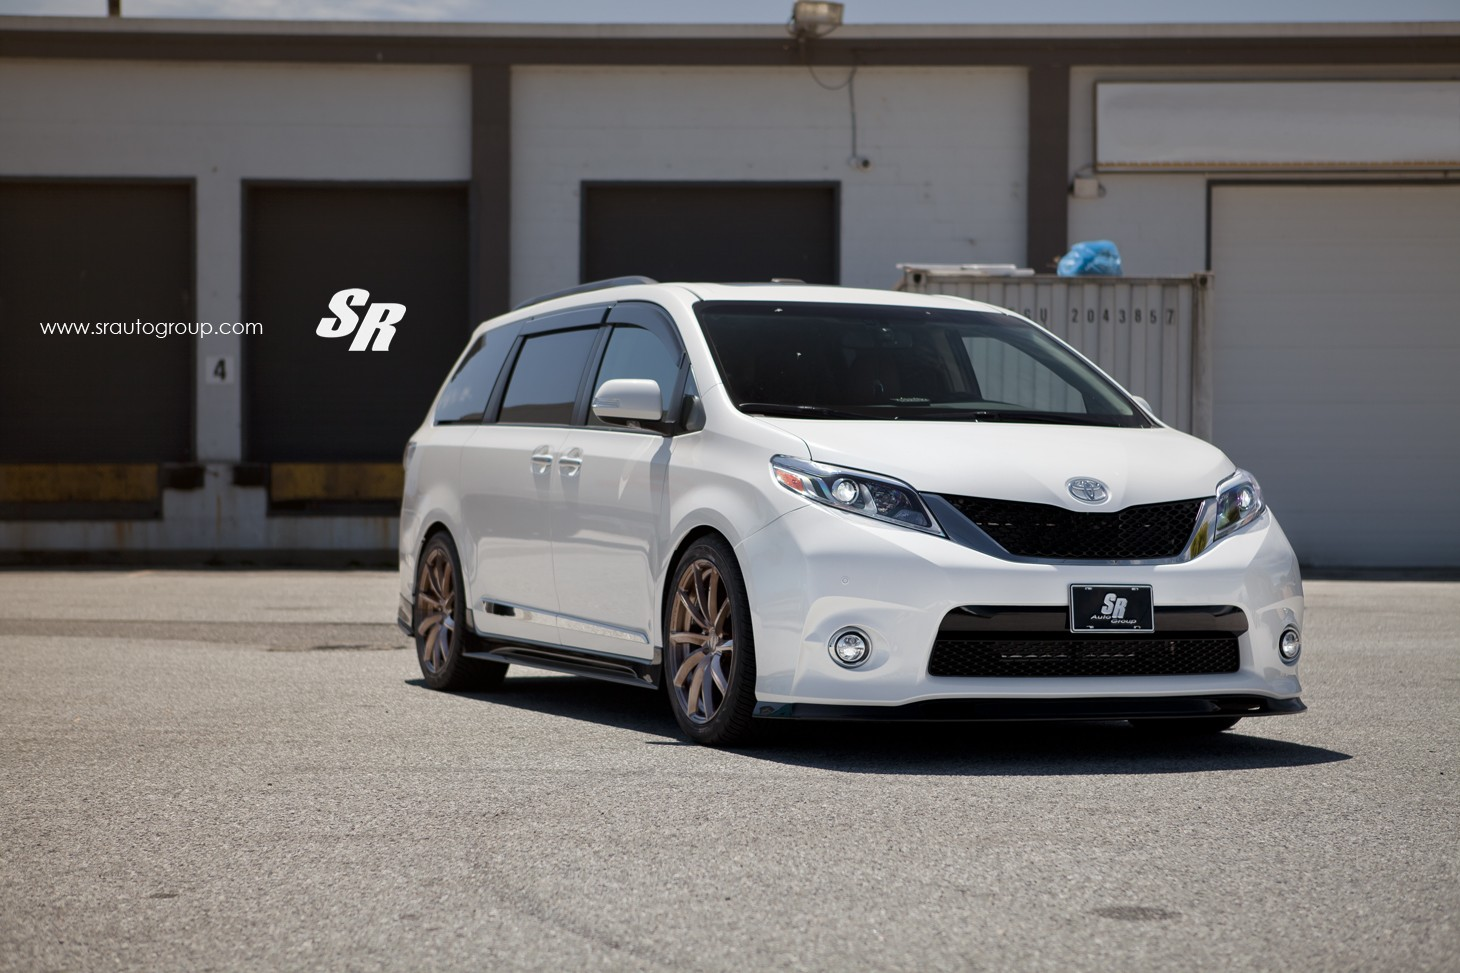 Sienna Hybrid >> 2015 Toyota Sienna on PUR Wheels Looks Unexpectedly Sporty - autoevolution